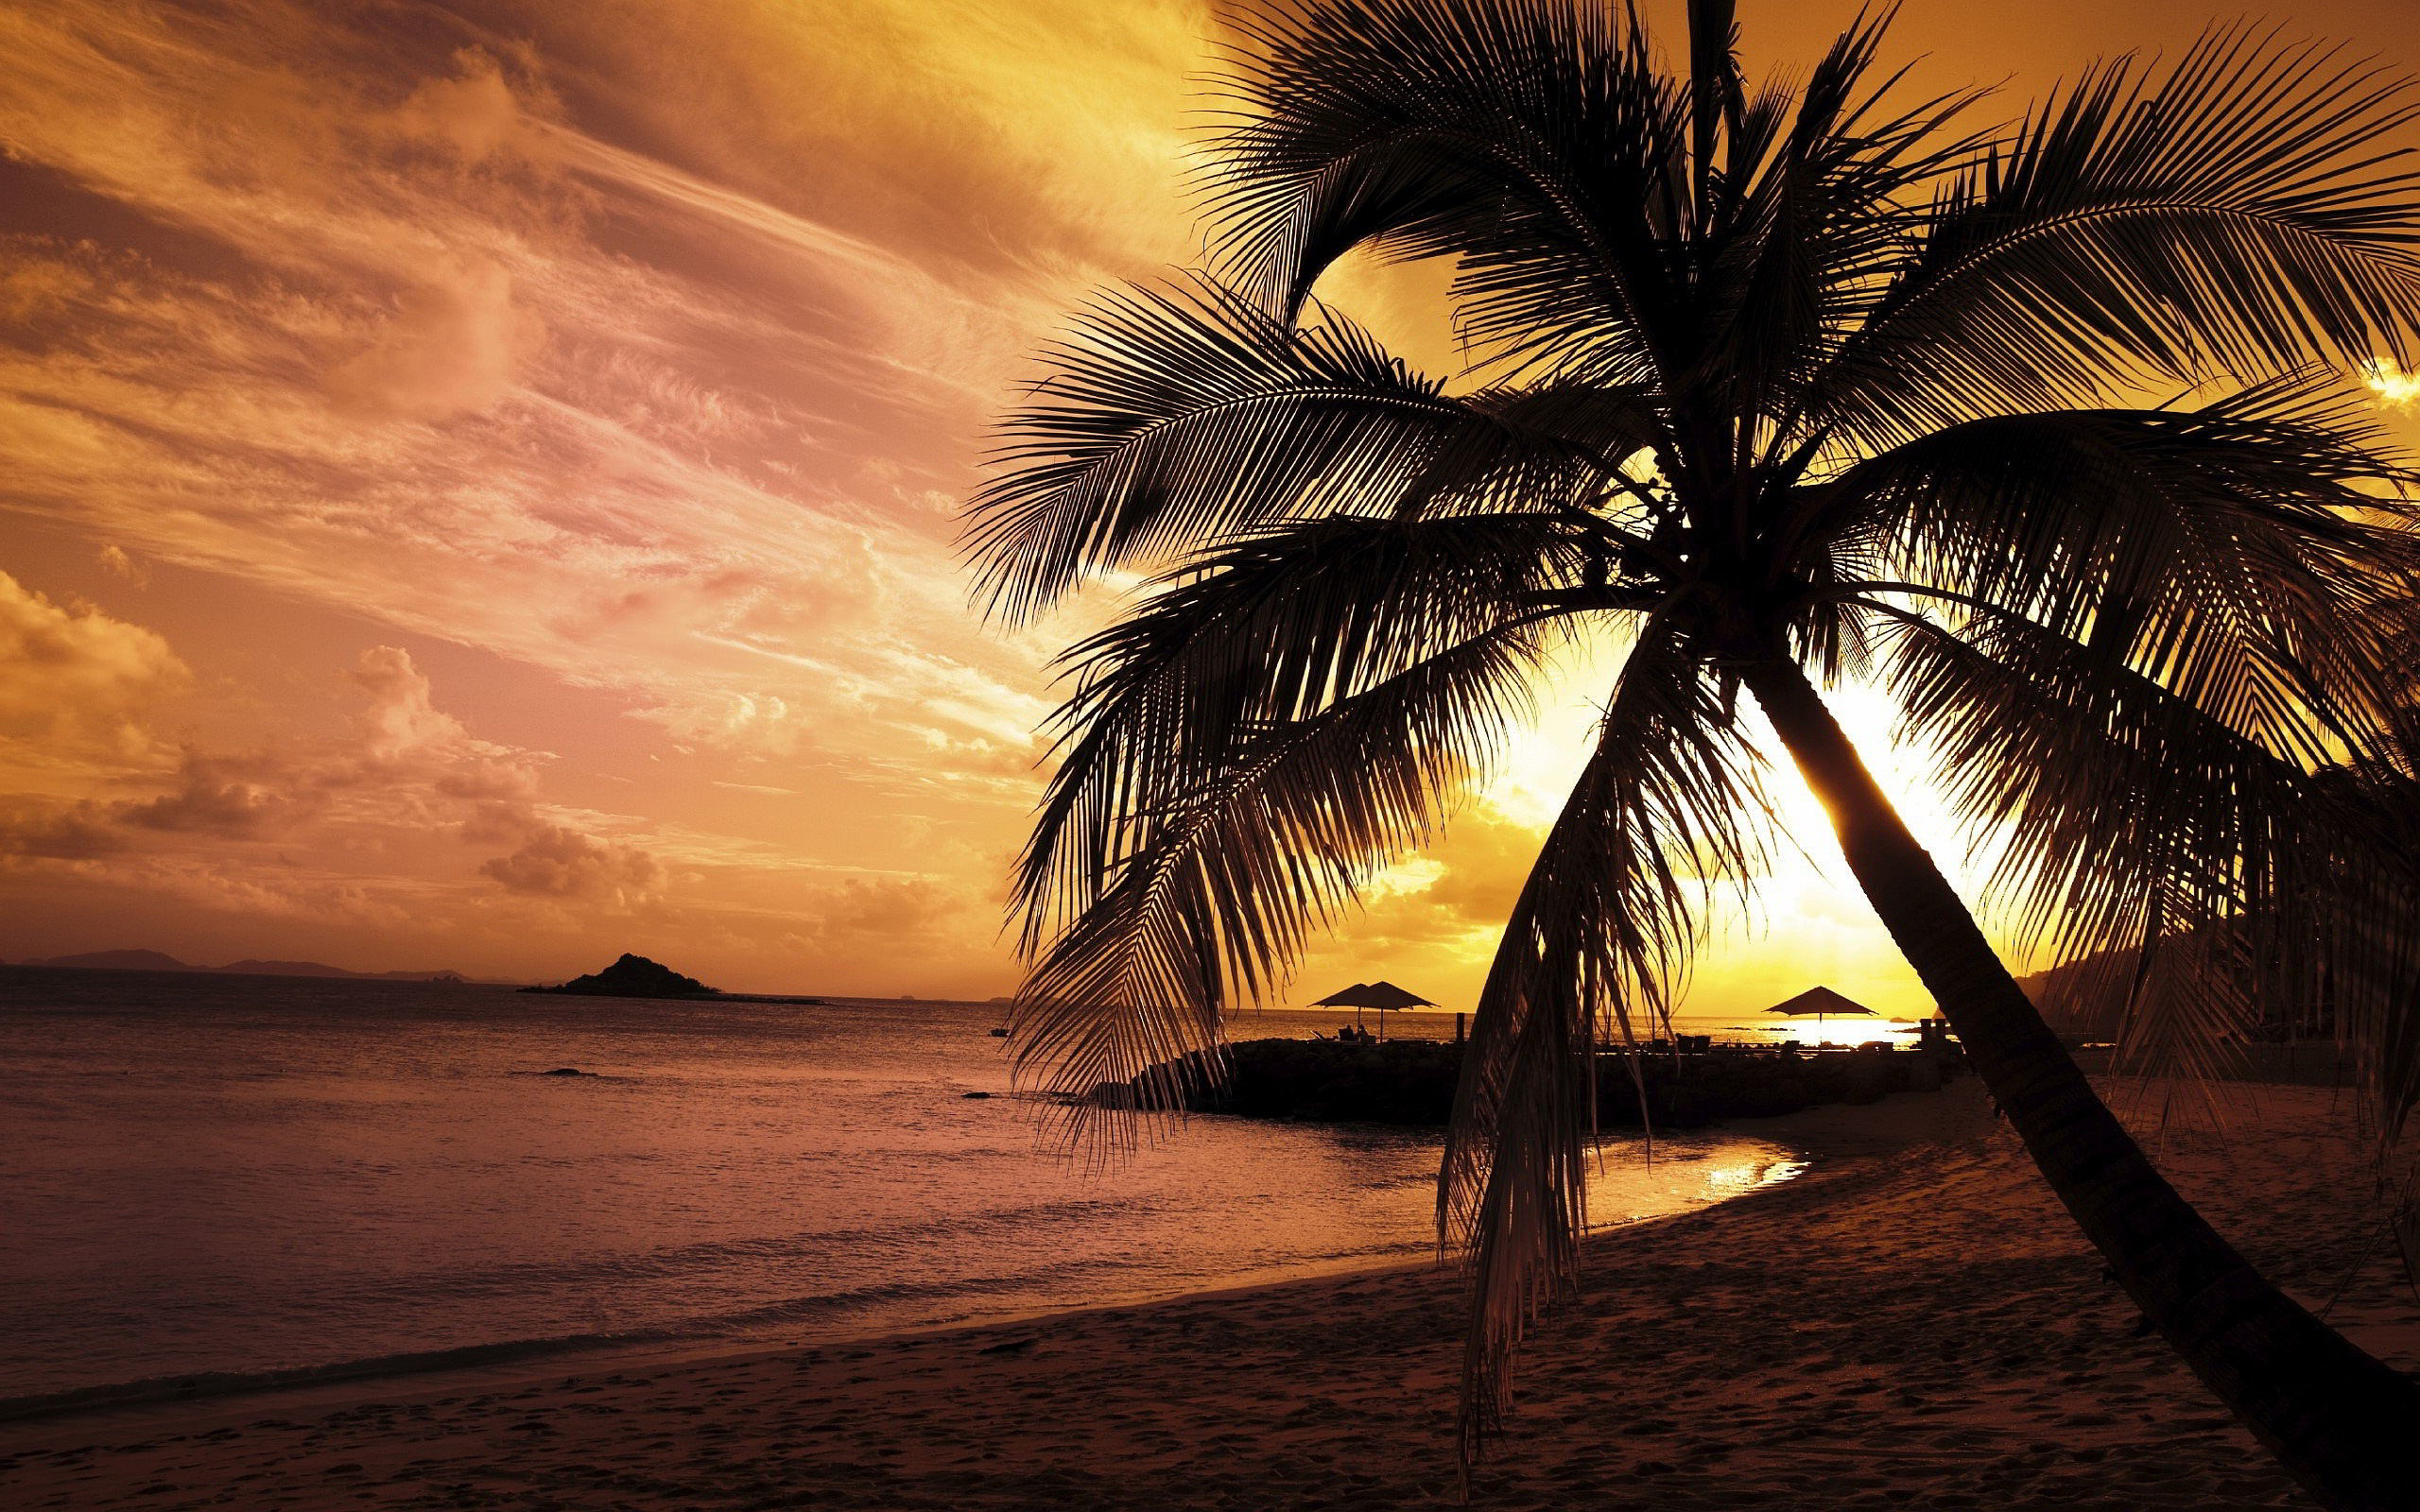 2560x1600 Sunset Beach Wallpaper 1080p HD